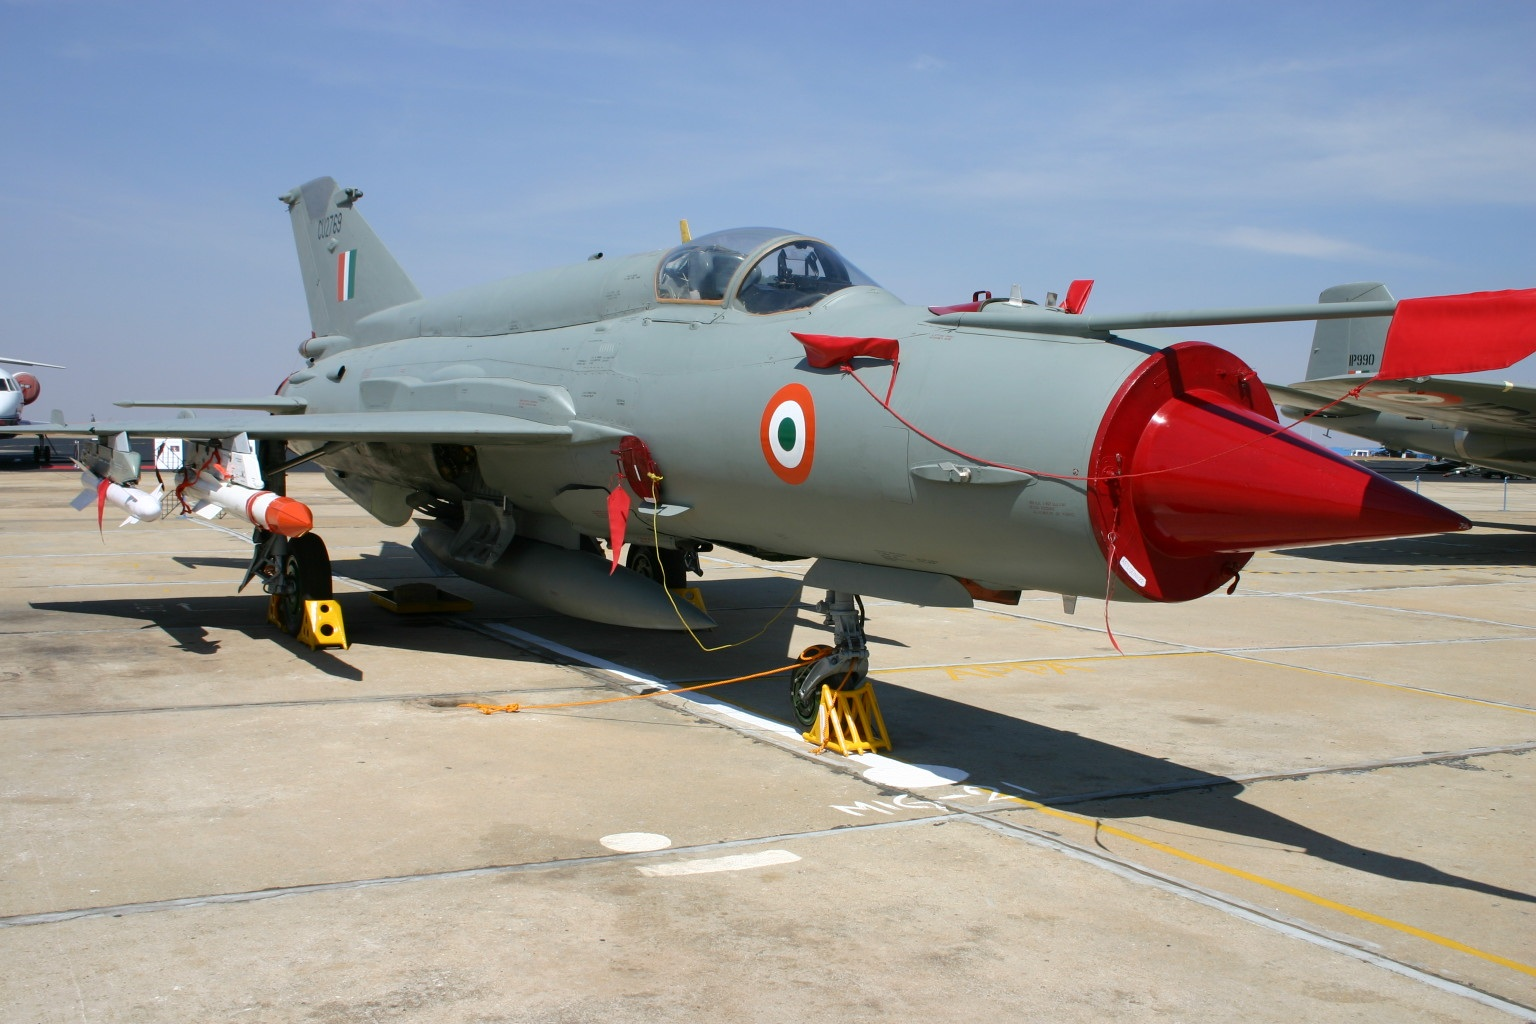 File:CU2769 Mikoyan Mig-21 Indian Air Force (8413513629).jpg - Wikimedia Commons